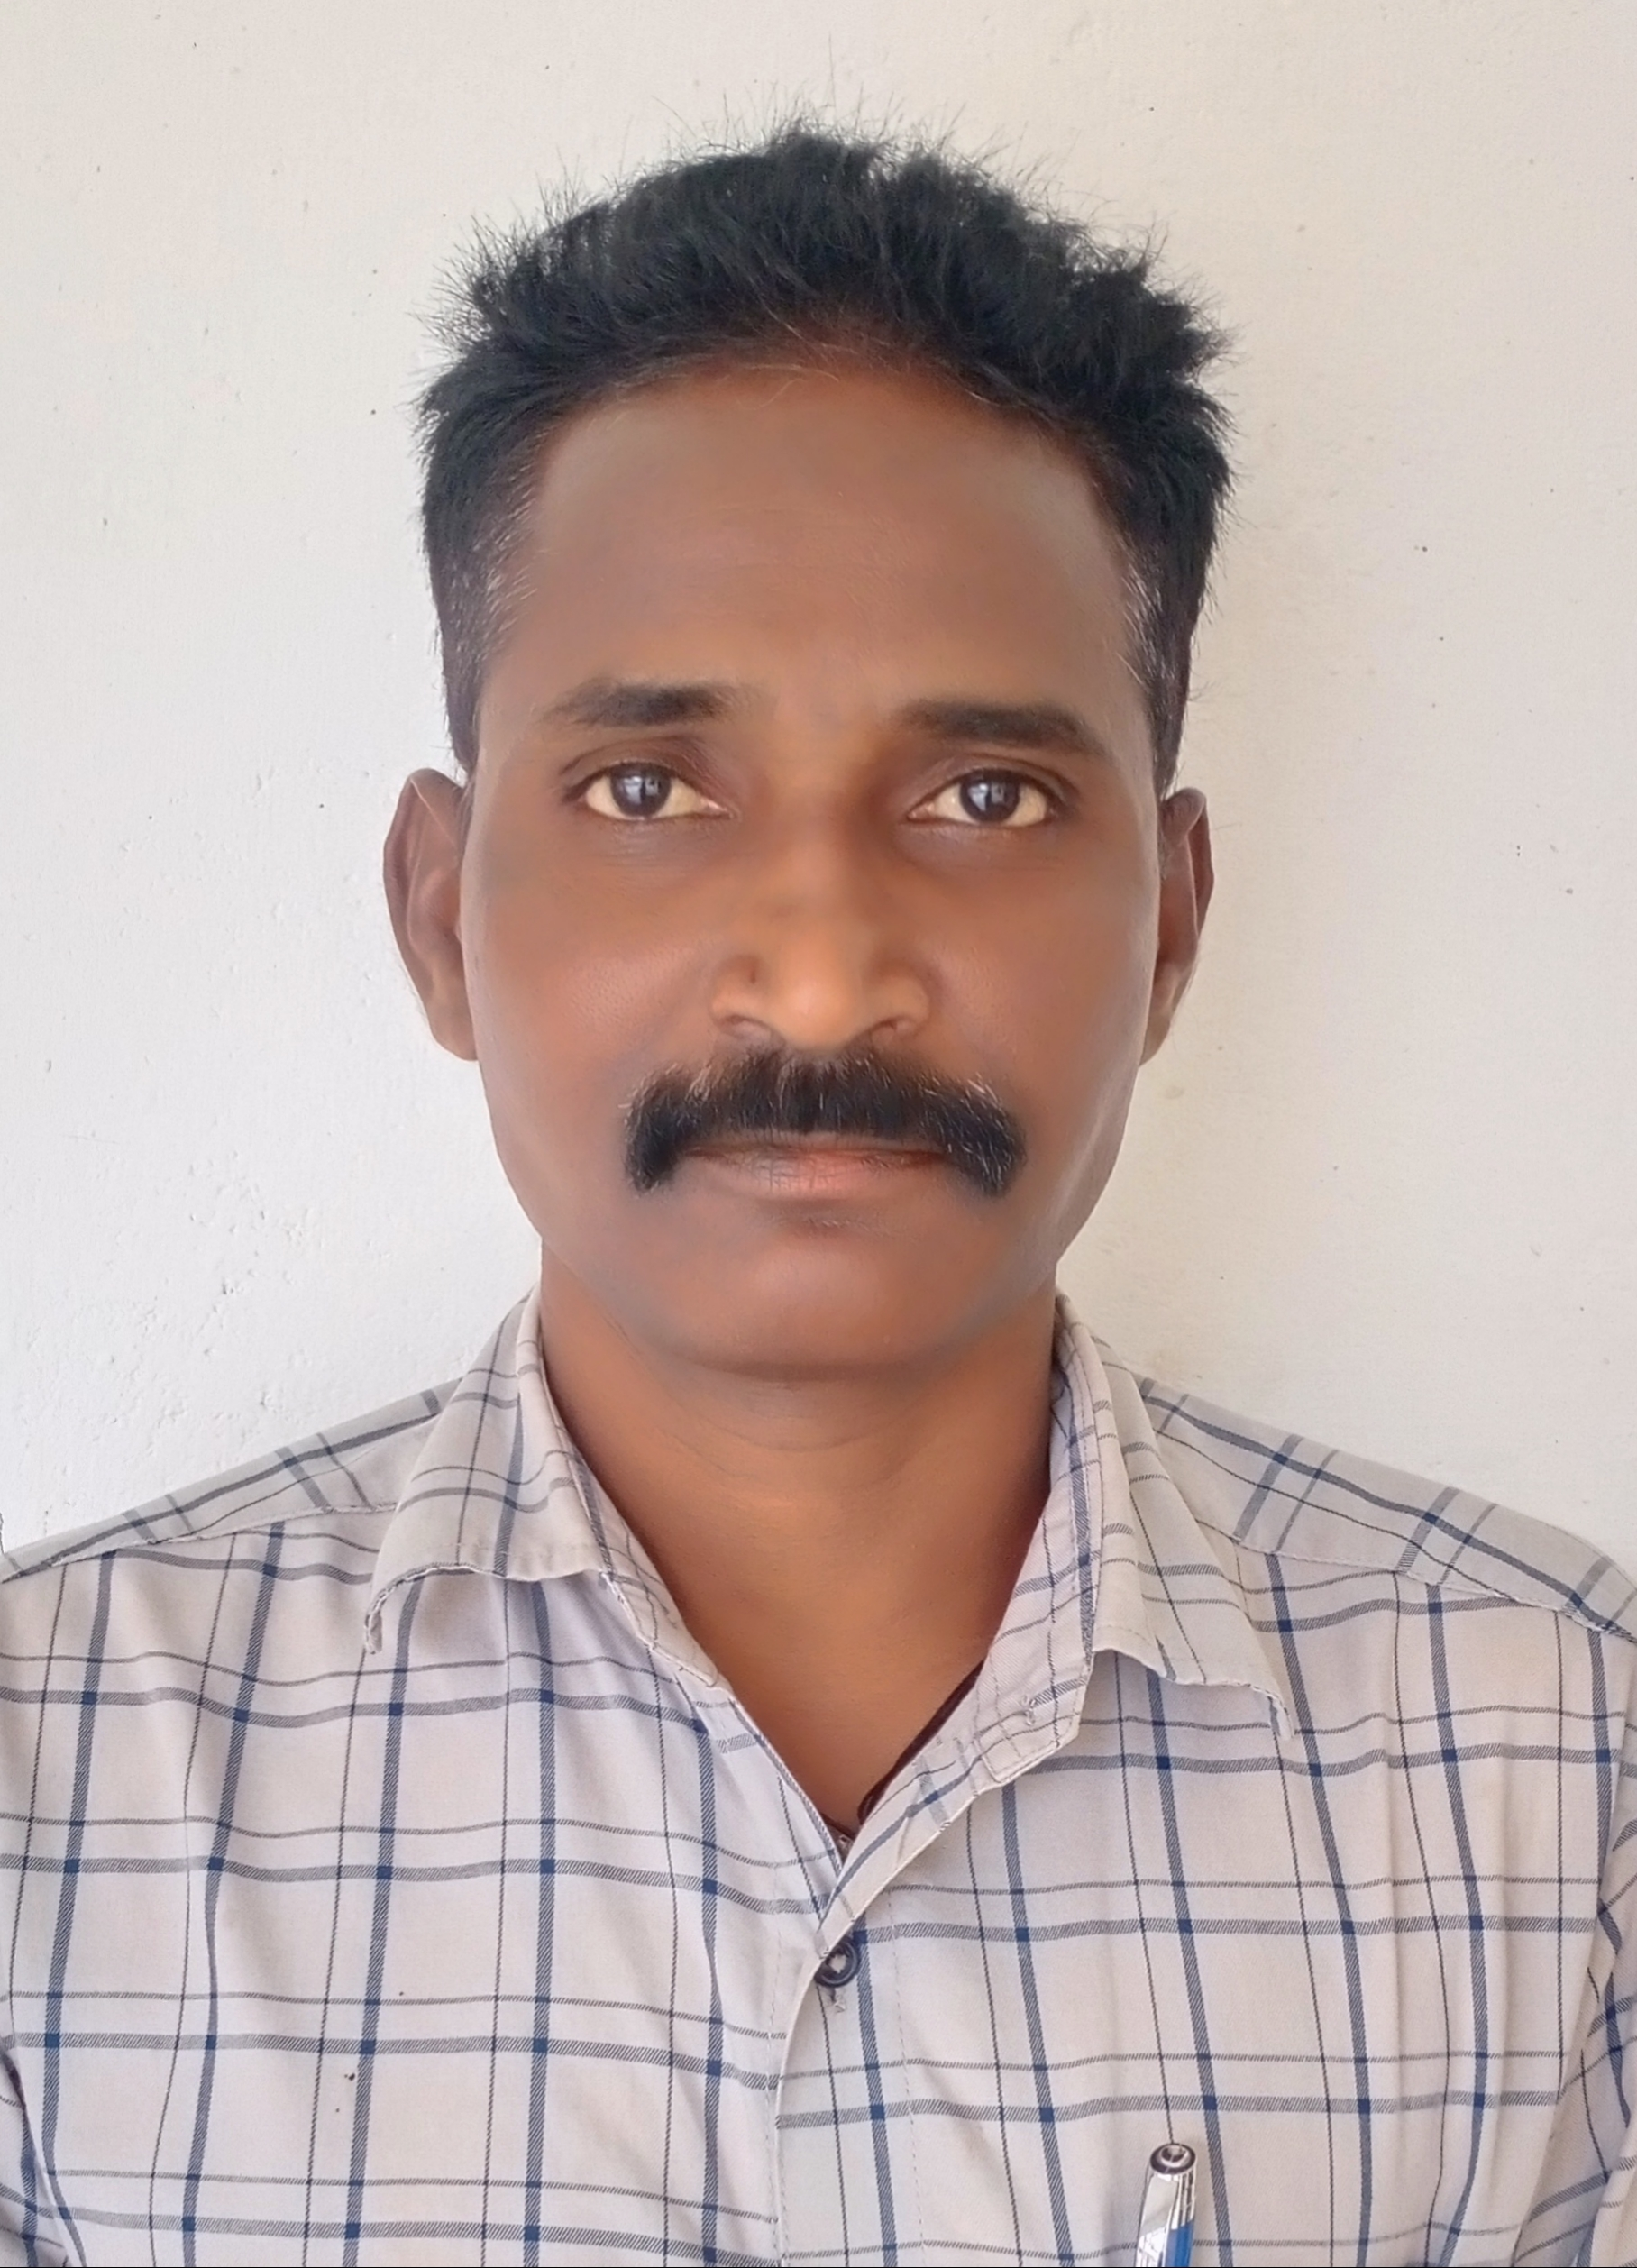 Mr. Purshottam Nag